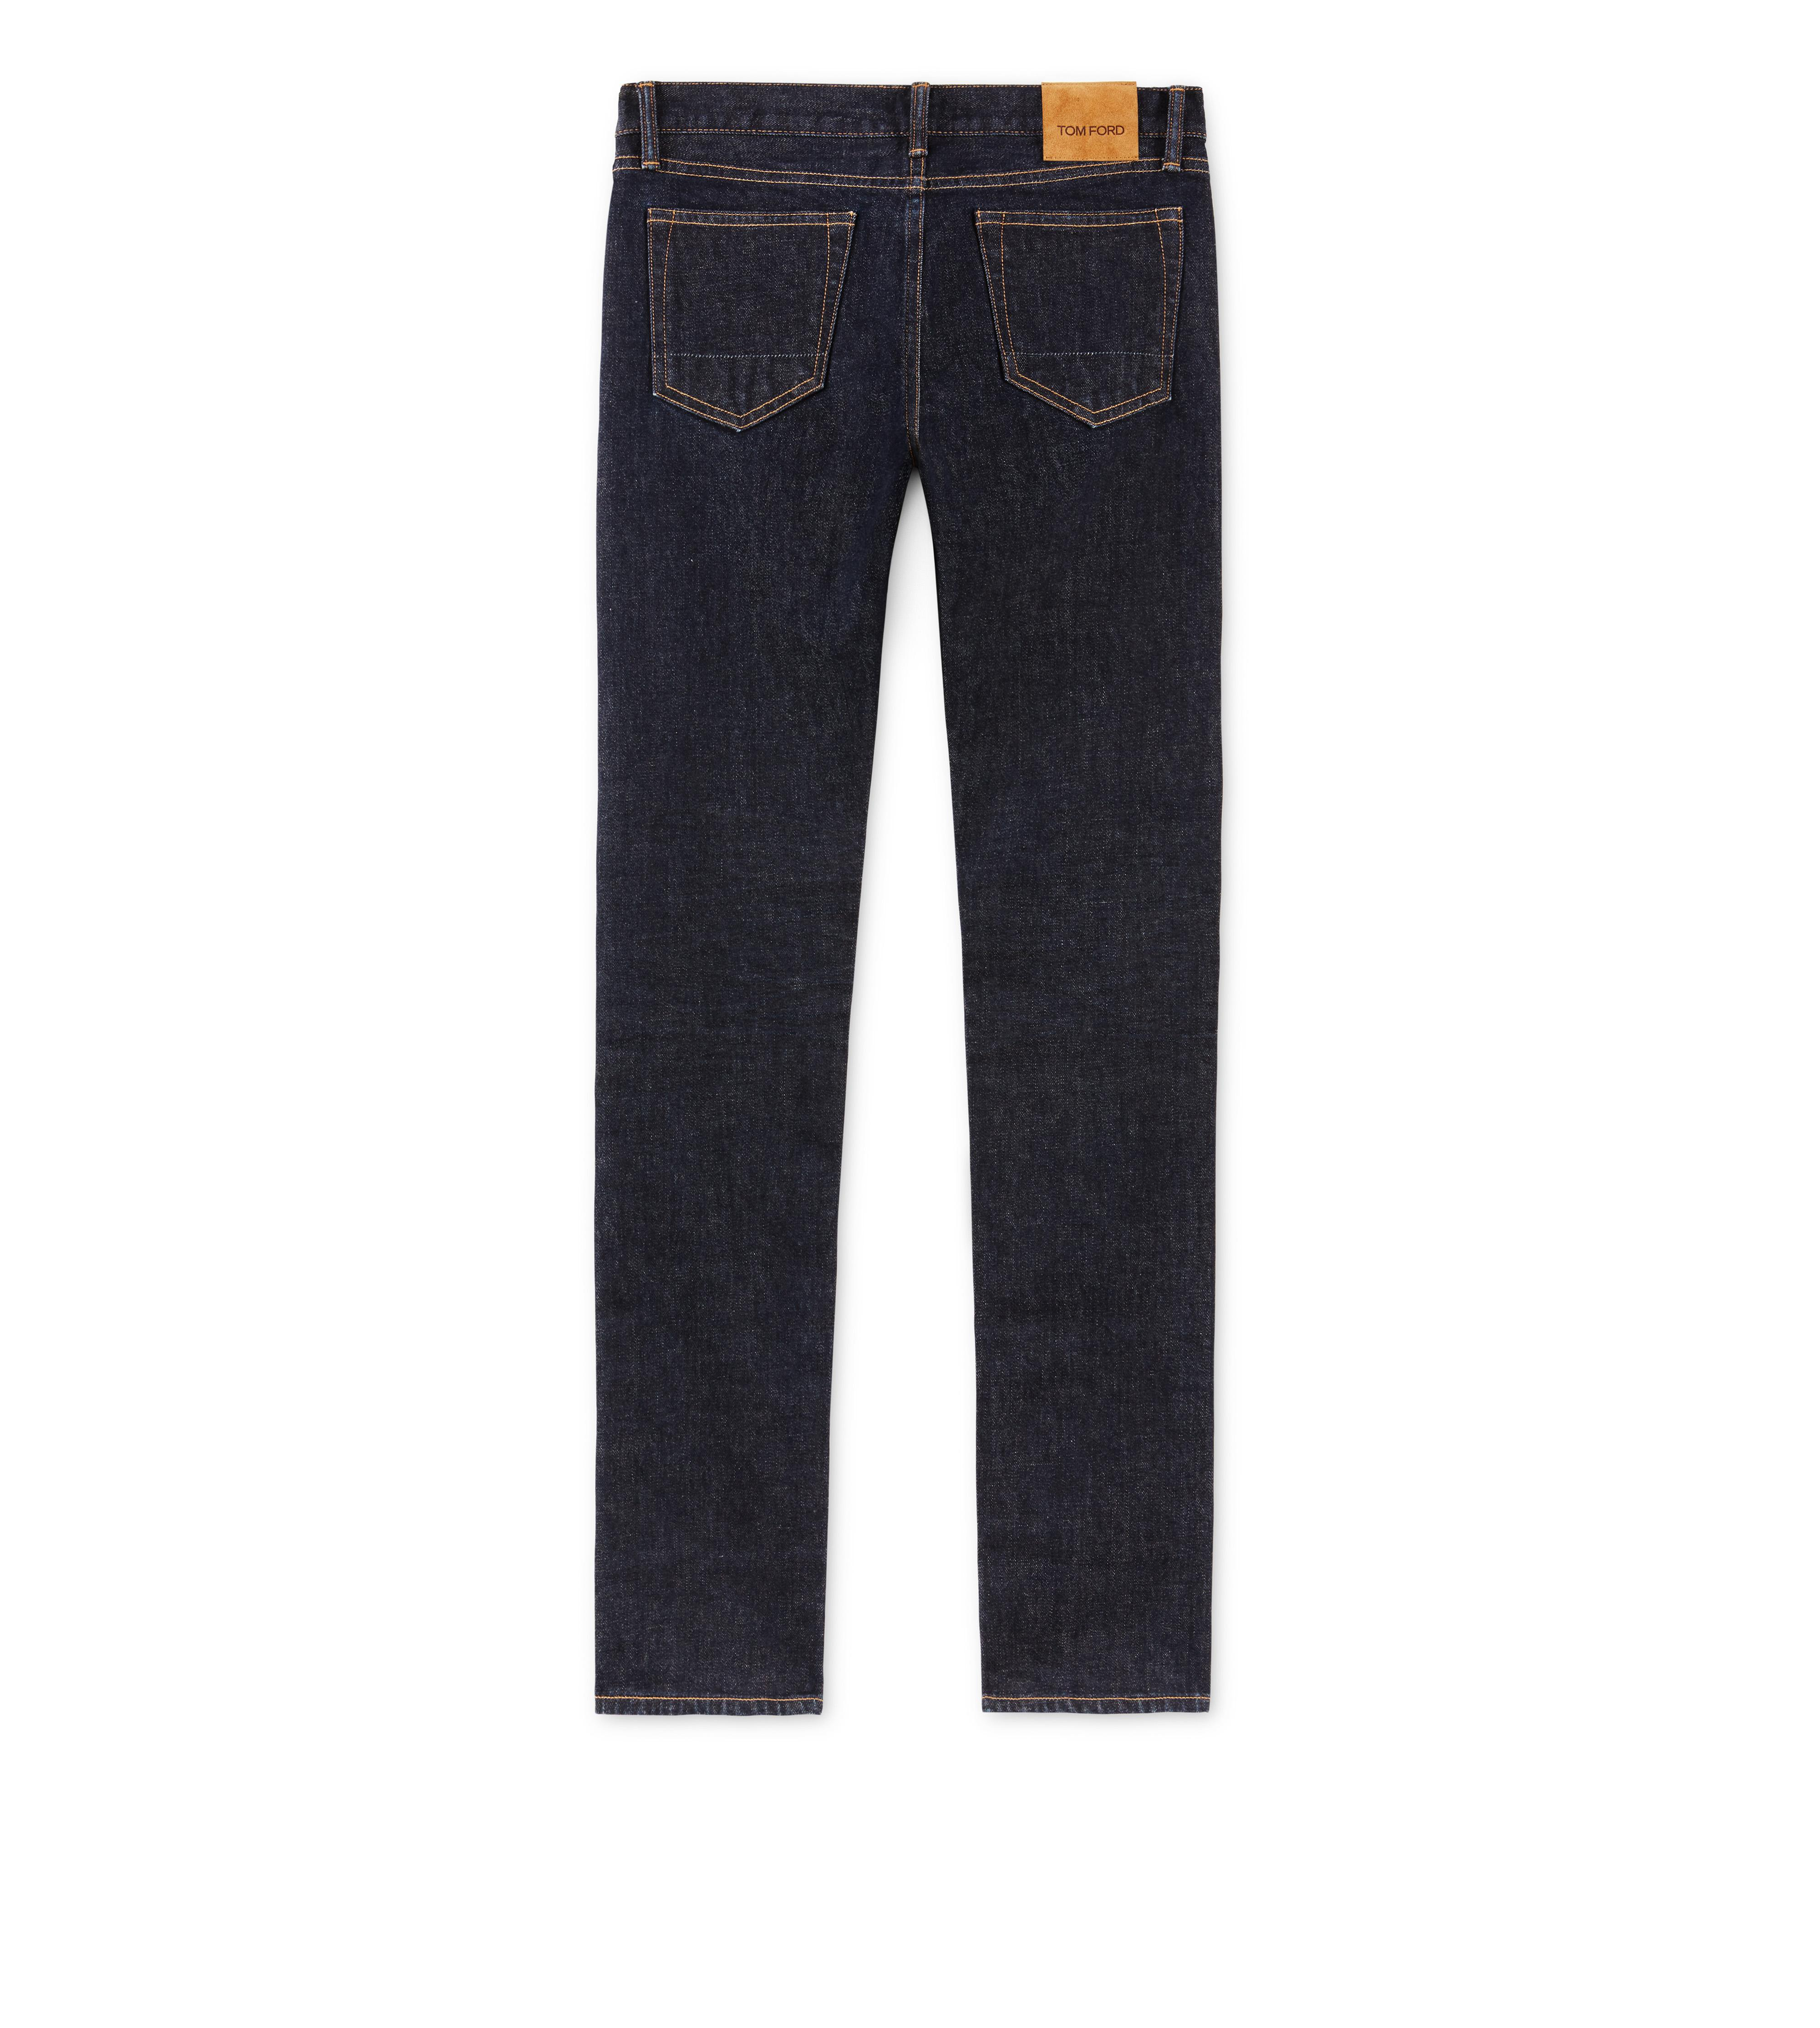 SLIM FIT BLUE JEANS B thumbnail